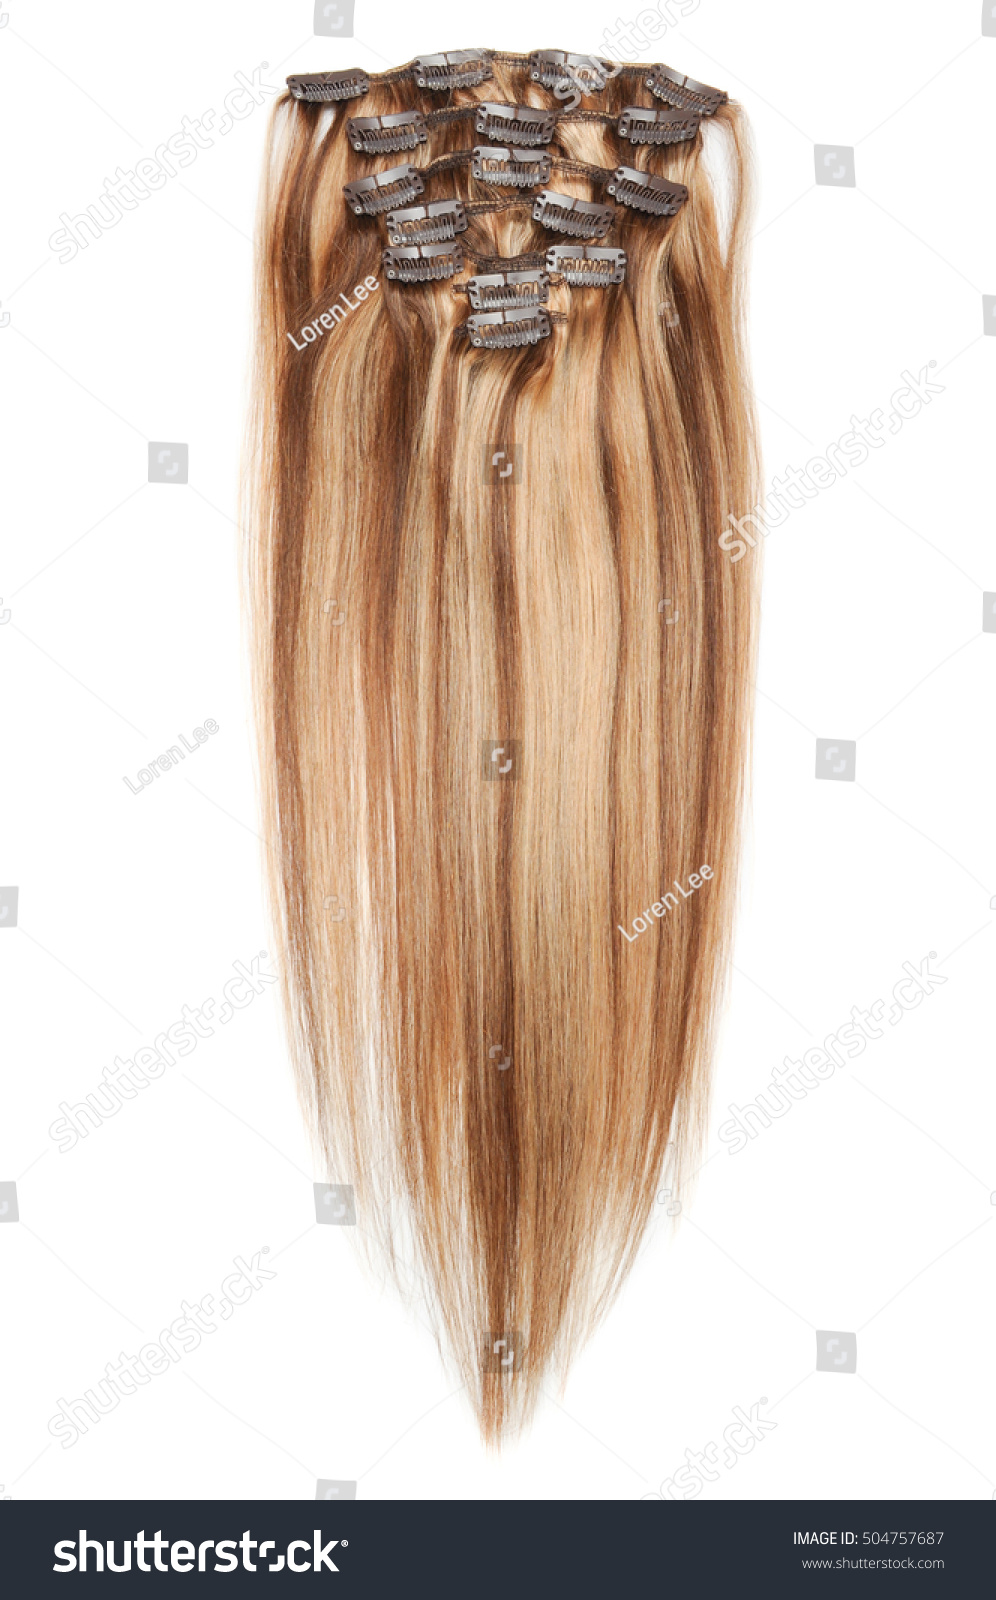 Clip Straight Medium Brown Hair Golden Stock Photo Edit Now